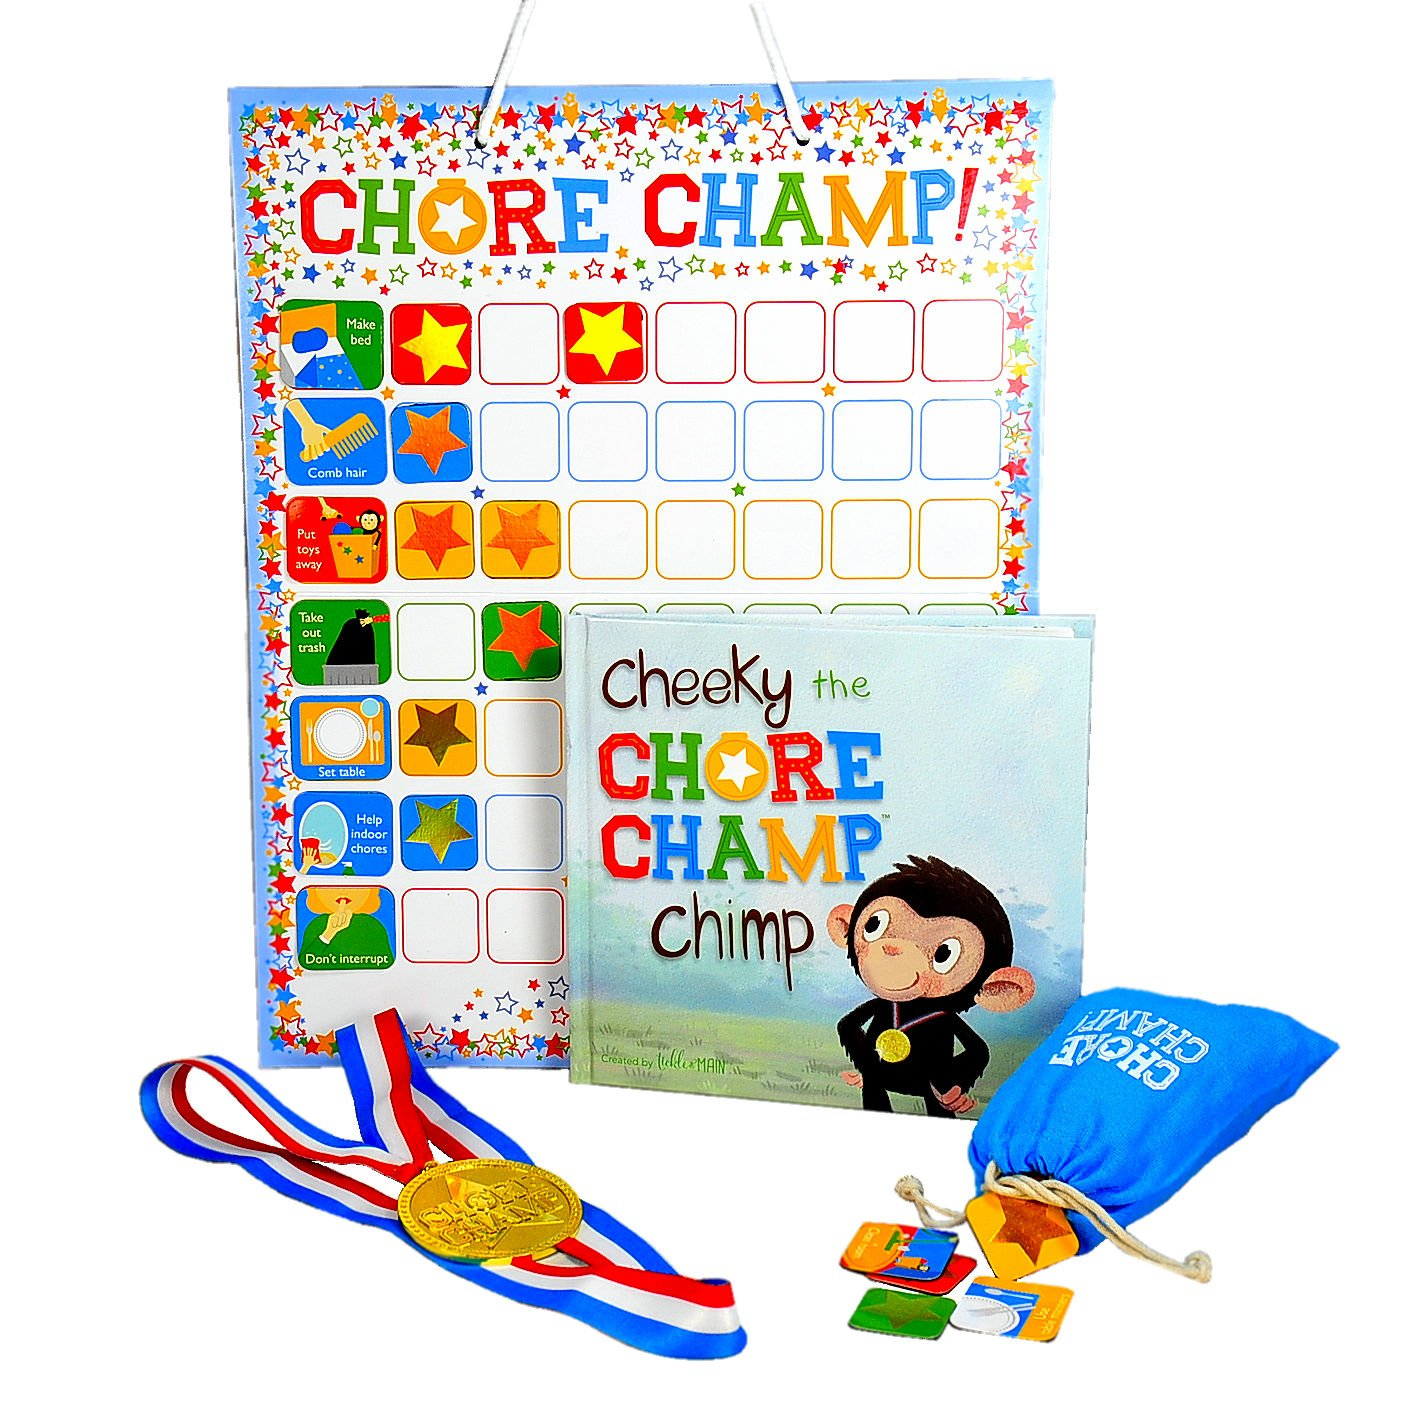 Chore Champ! – Chore Chart Set for Toddlers and Kids - Responsibility, Behavior, Reward - Includes Book, Magnetic Chart, 78 Magnets, and Gold Medal Reward - Learn from Cheeky, The Chore Champ Chimp!